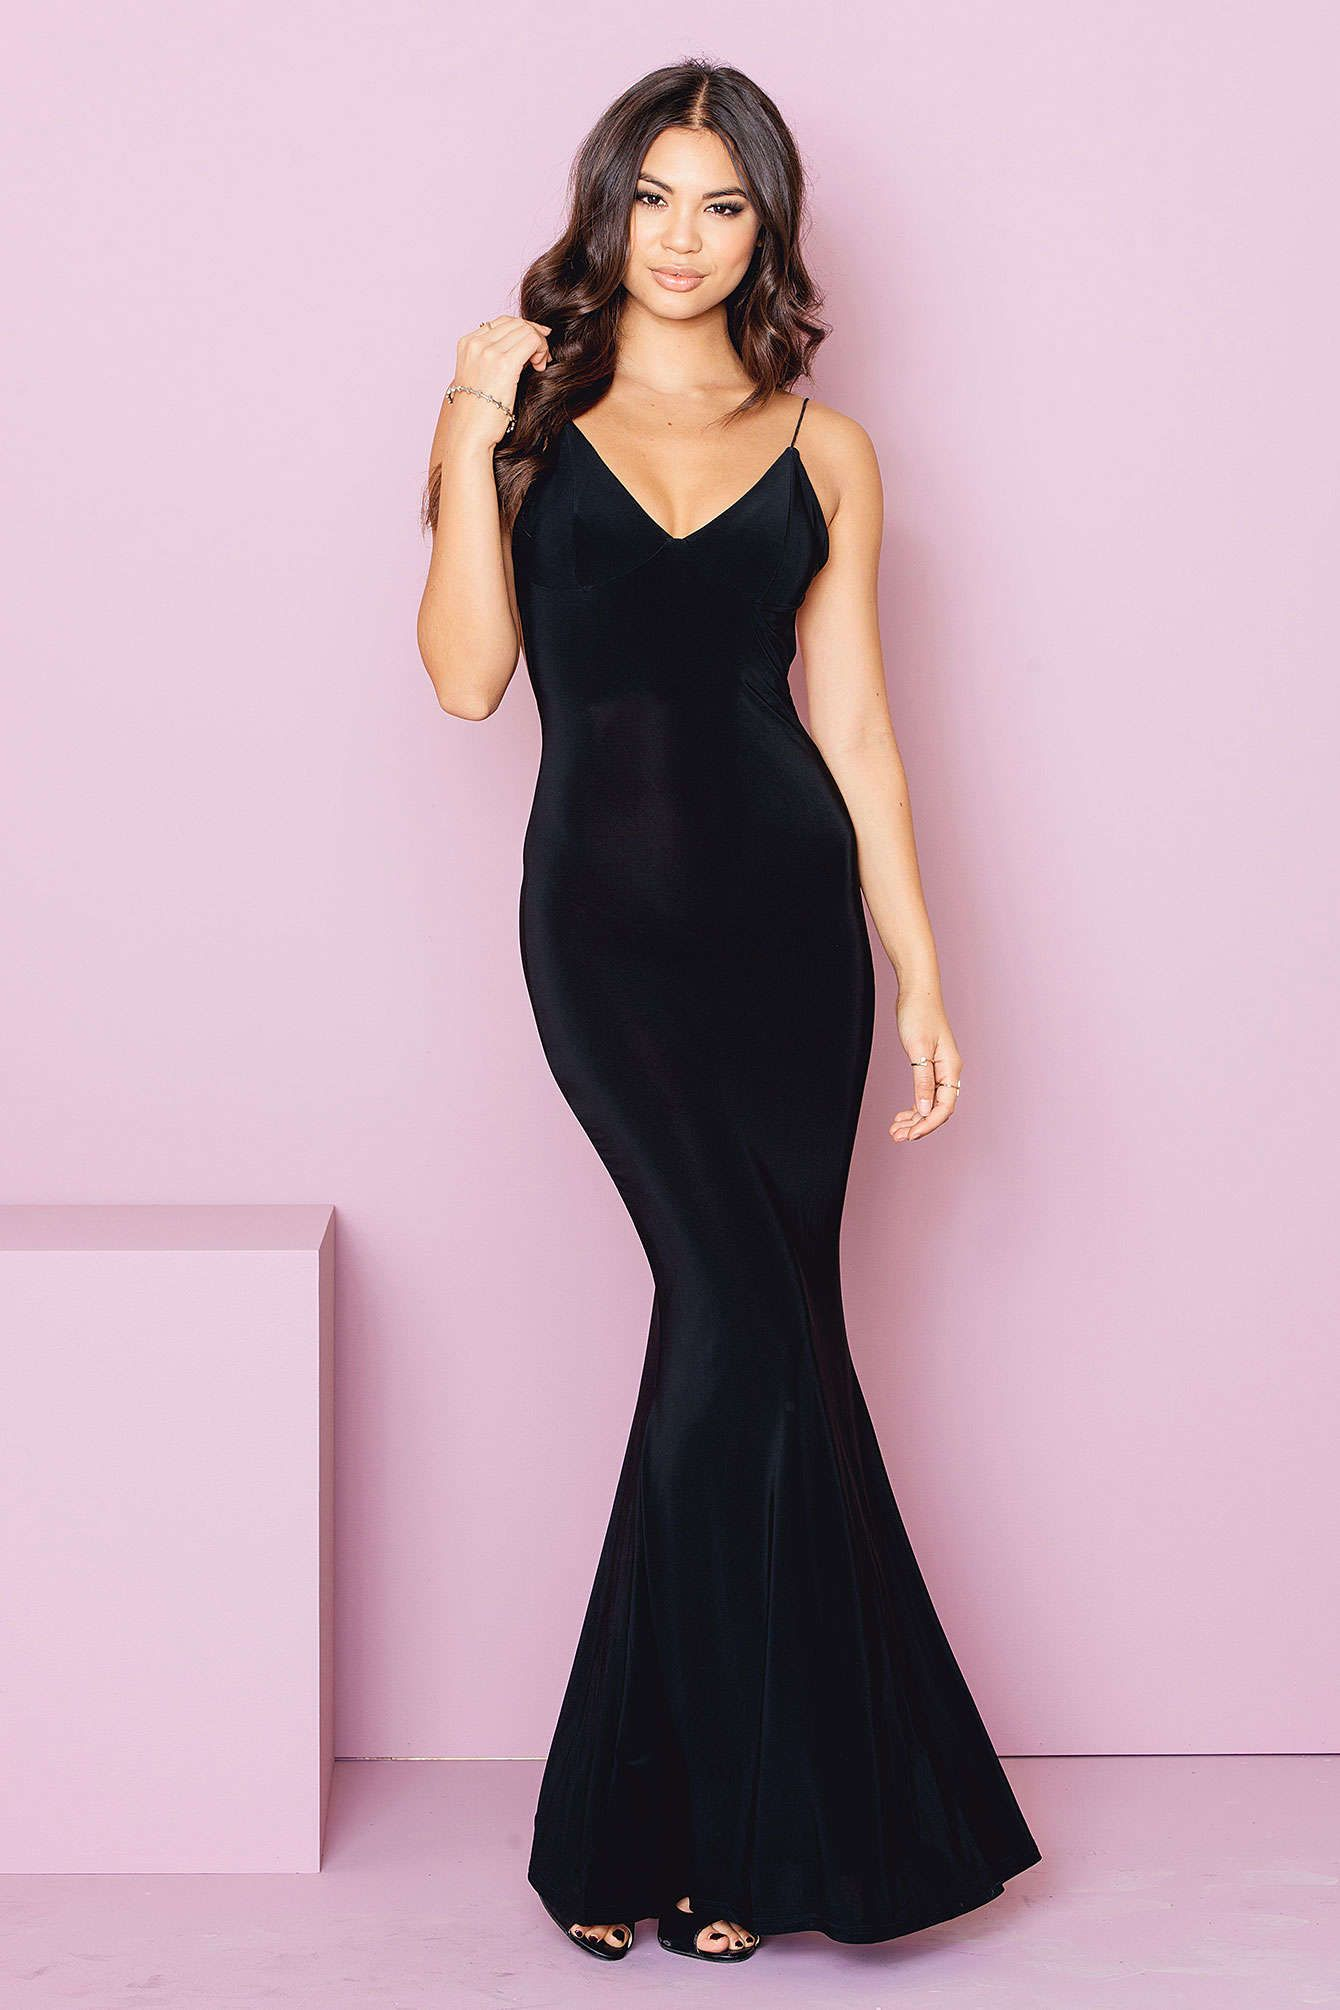 Show off you curves in this beauty by Rebecca Stella The Slinky